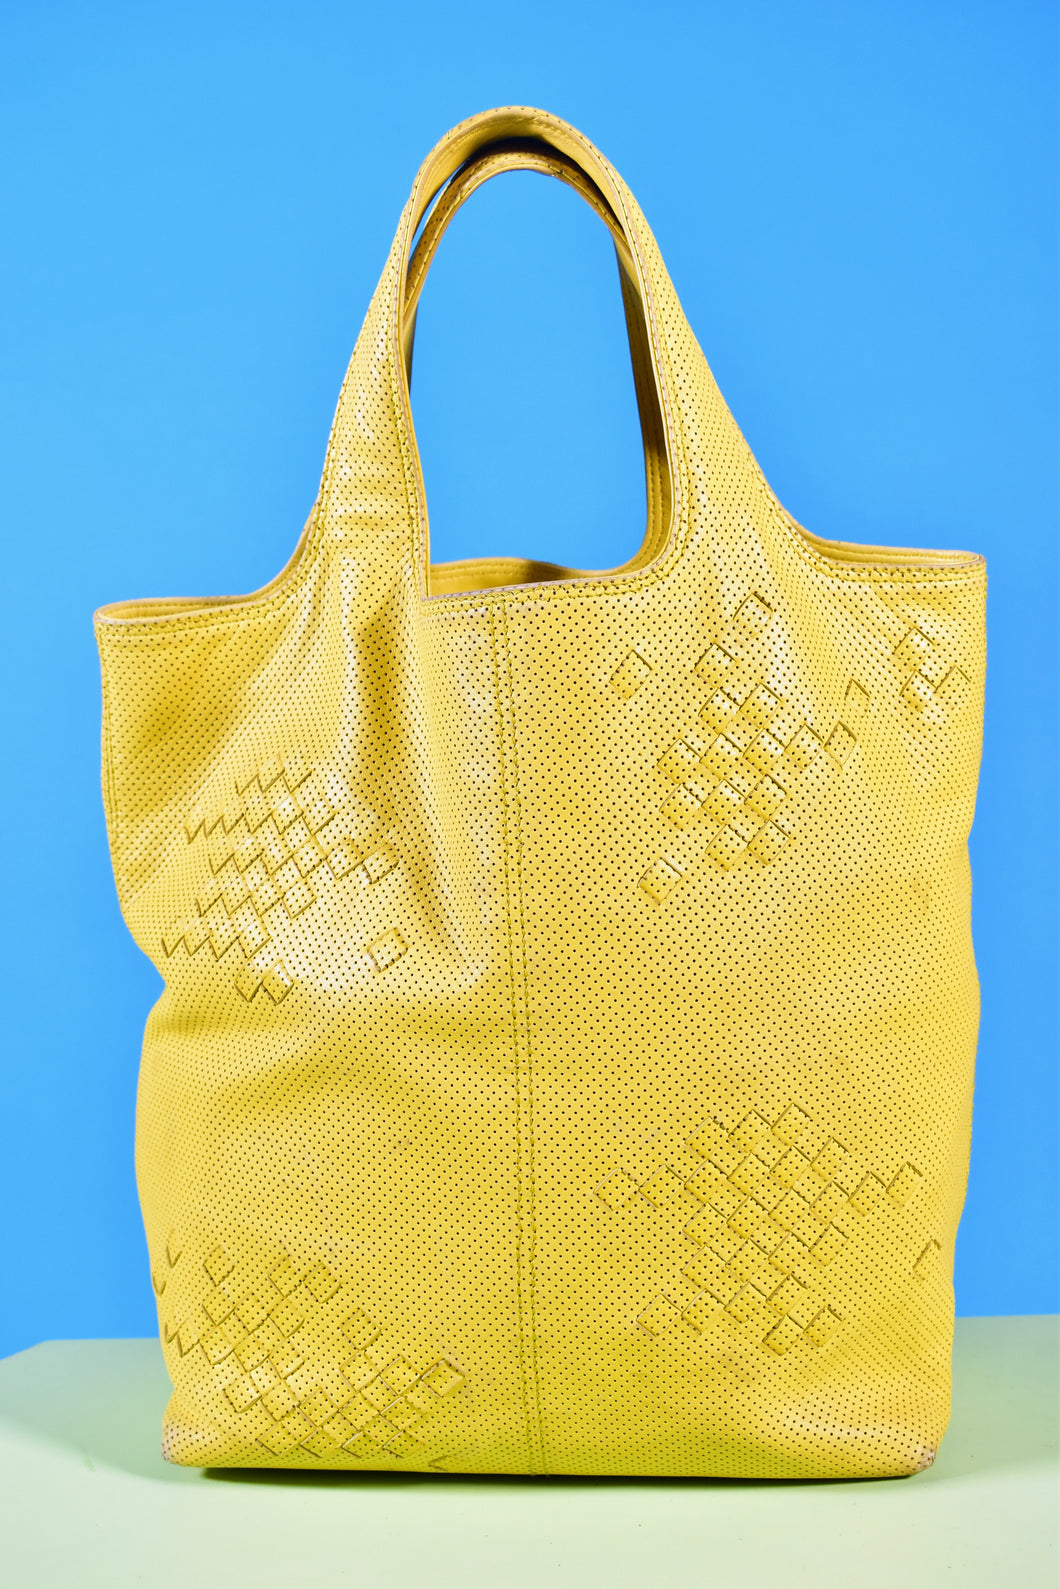 Vintage Bottega Veneta Yellow Handbag - Rianna In Berlin